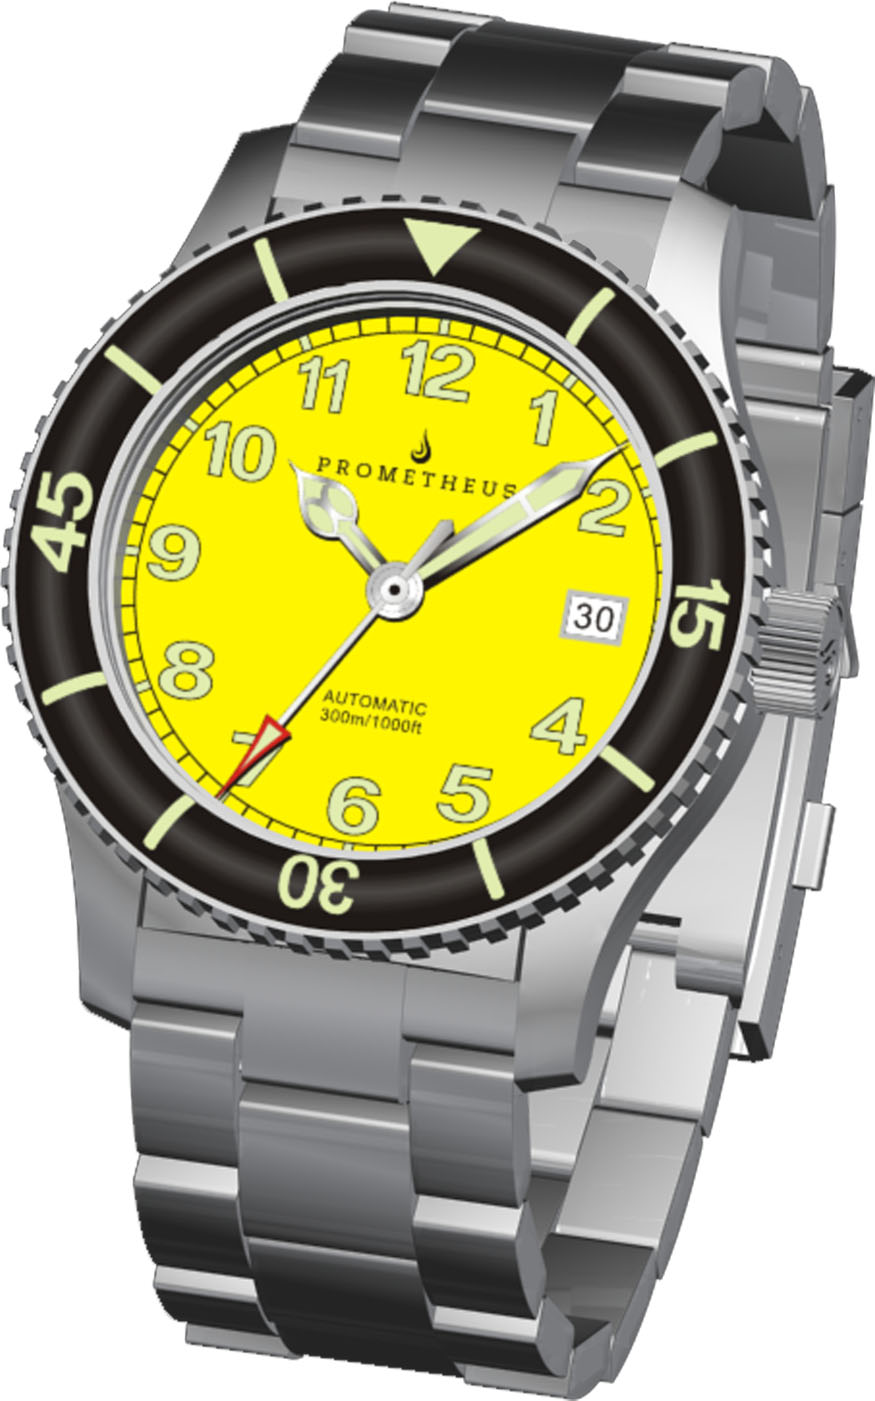 f watch watches swisswatchexpo prince tiger tudor dial yellow date hydronaut